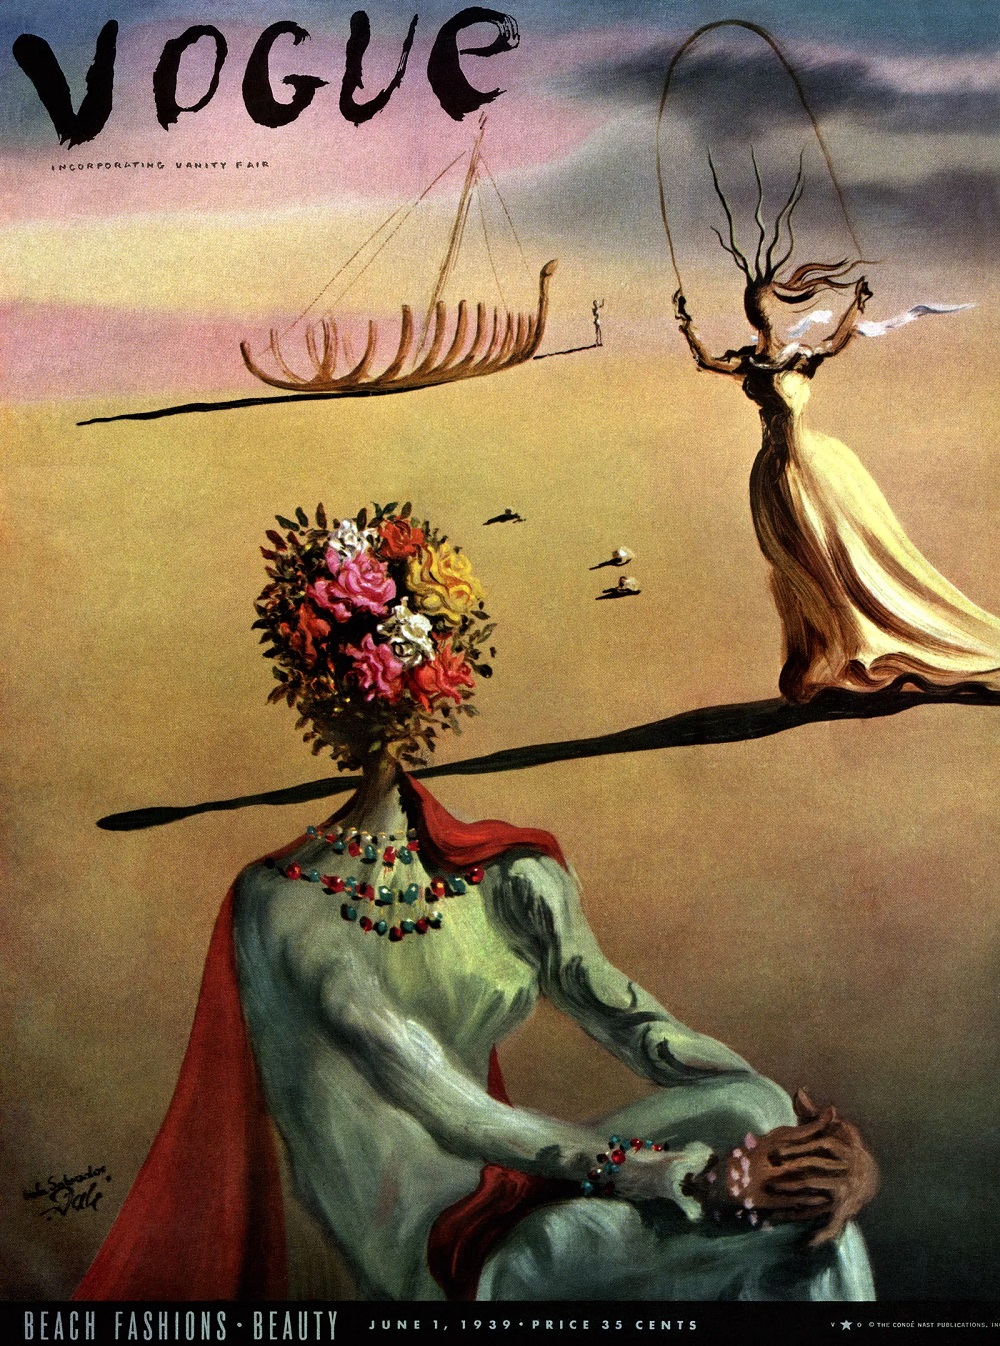 Salvador Dalí's 1939 cover for Vogue © Artists Rights Society, 2020, © Salvador Dalí Museum